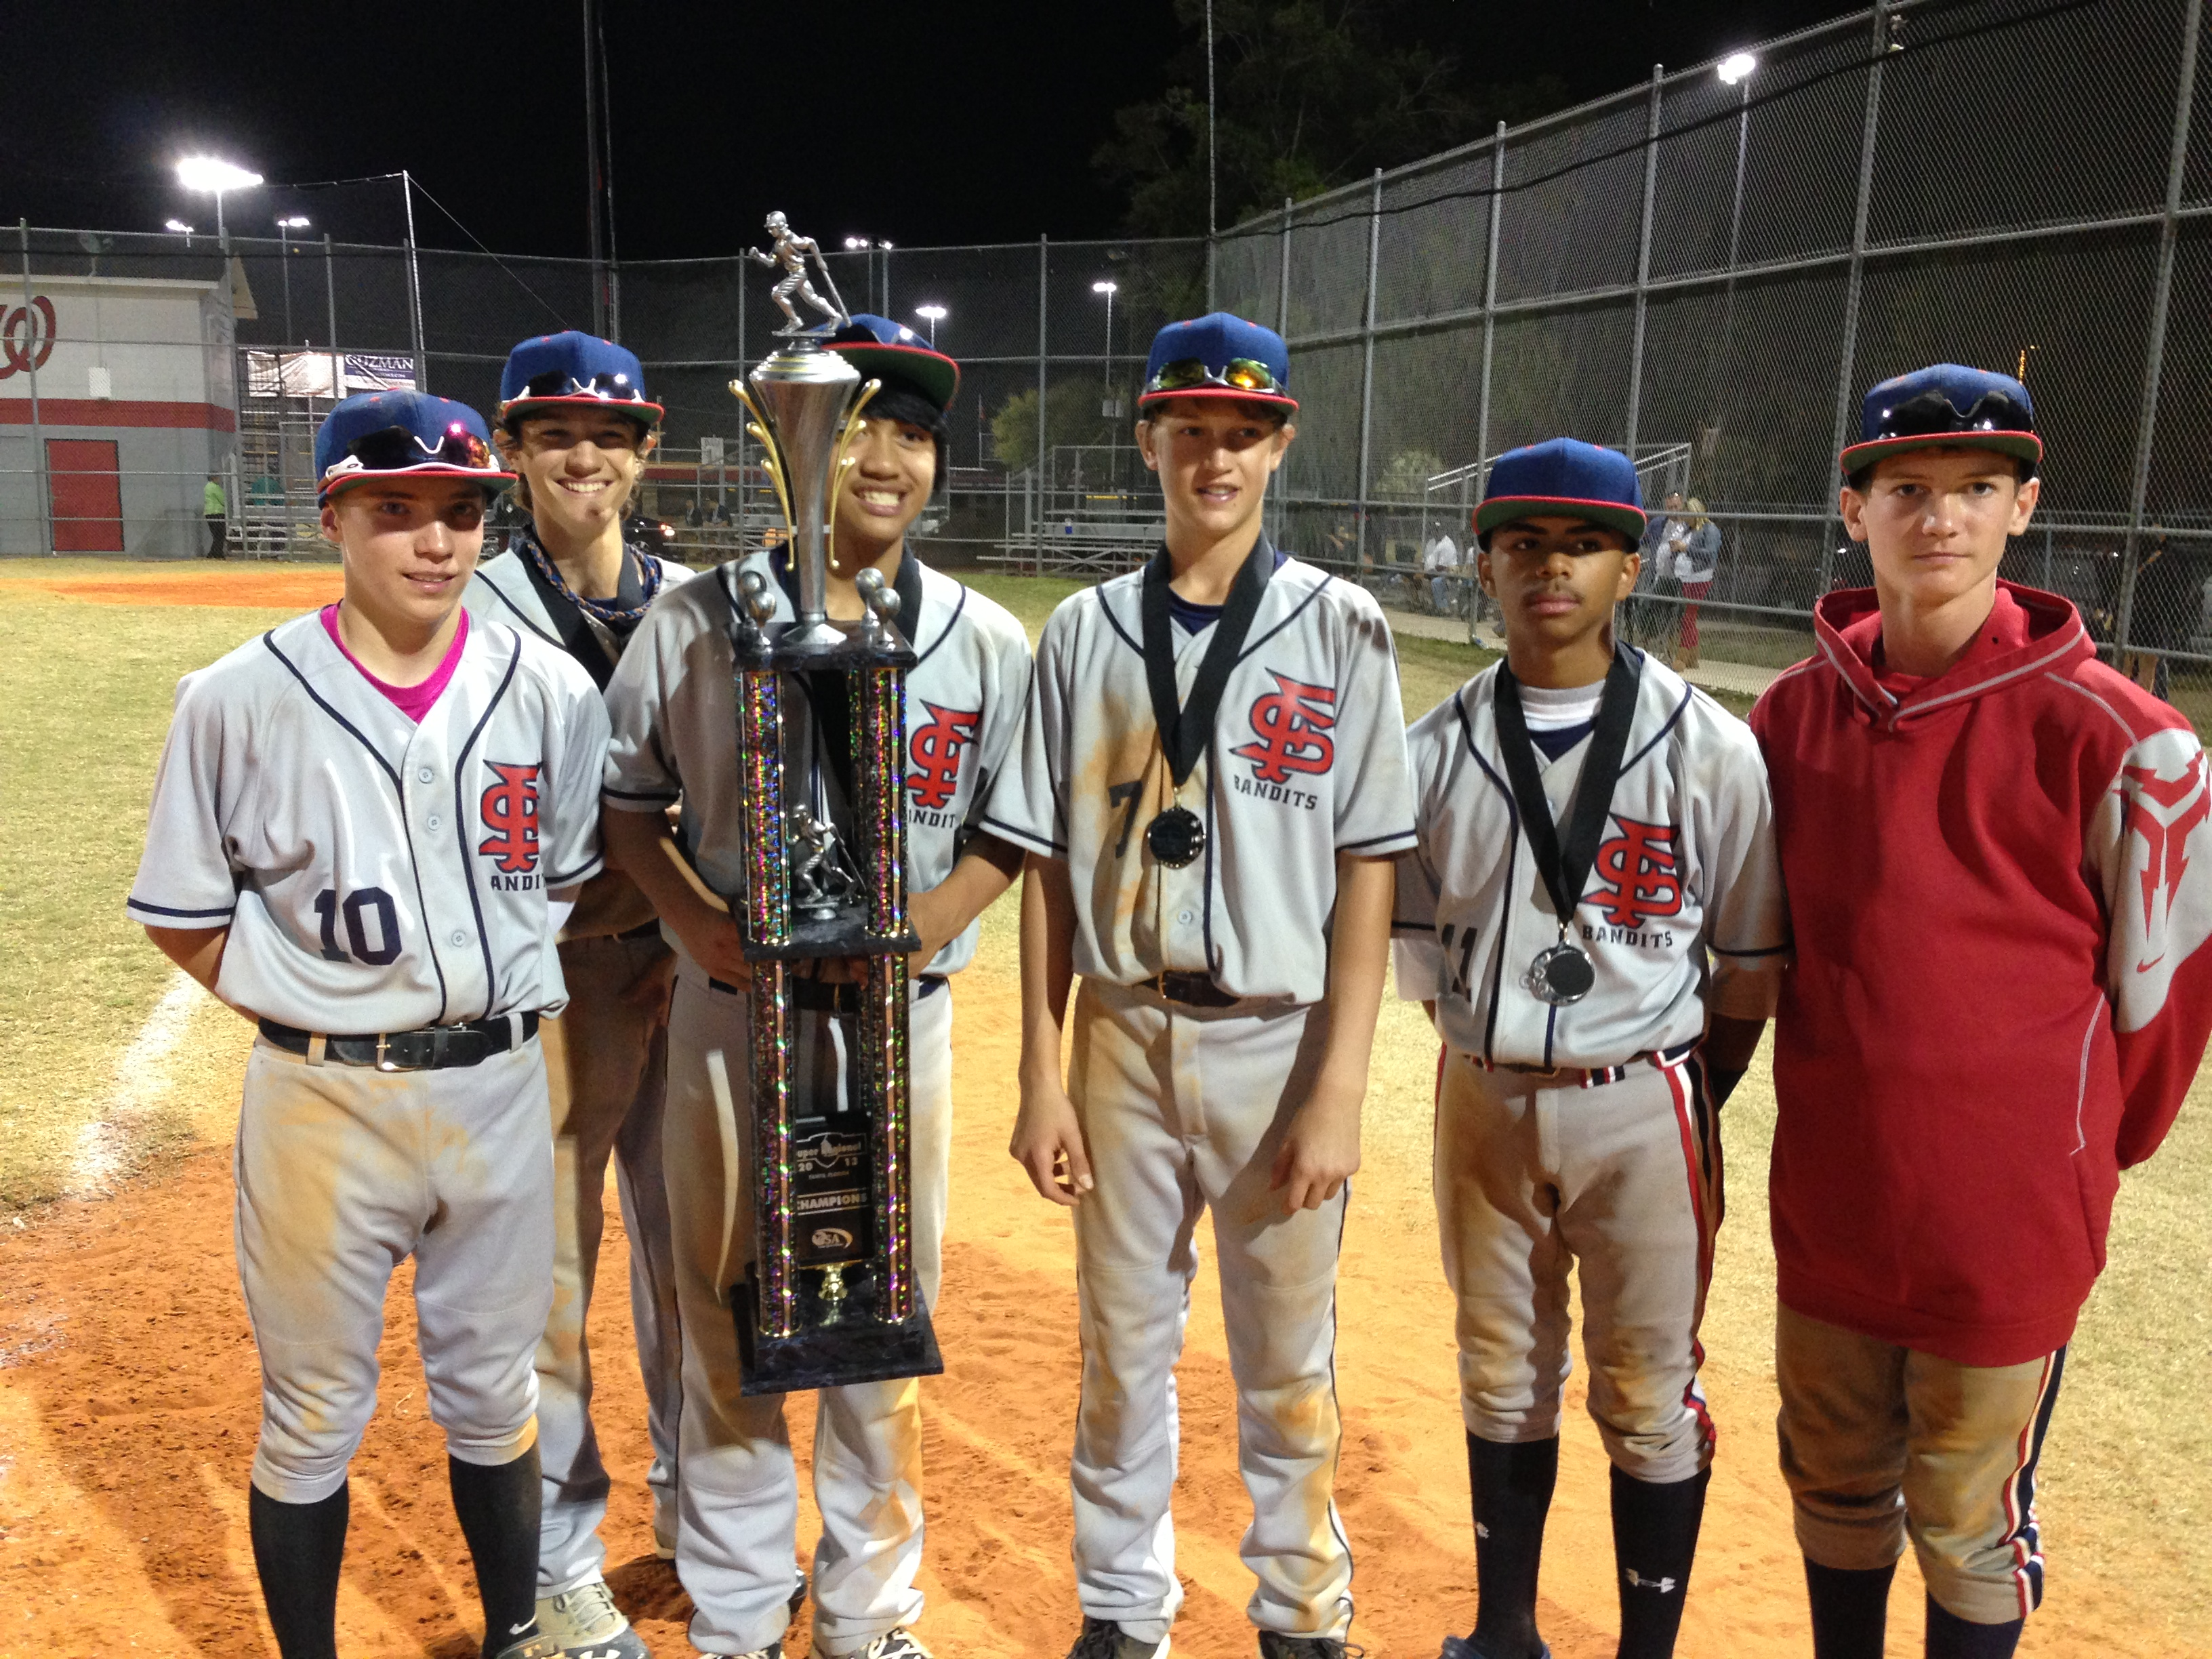 ... 14U tournament in Bartow, FL and came out victors -January 2013